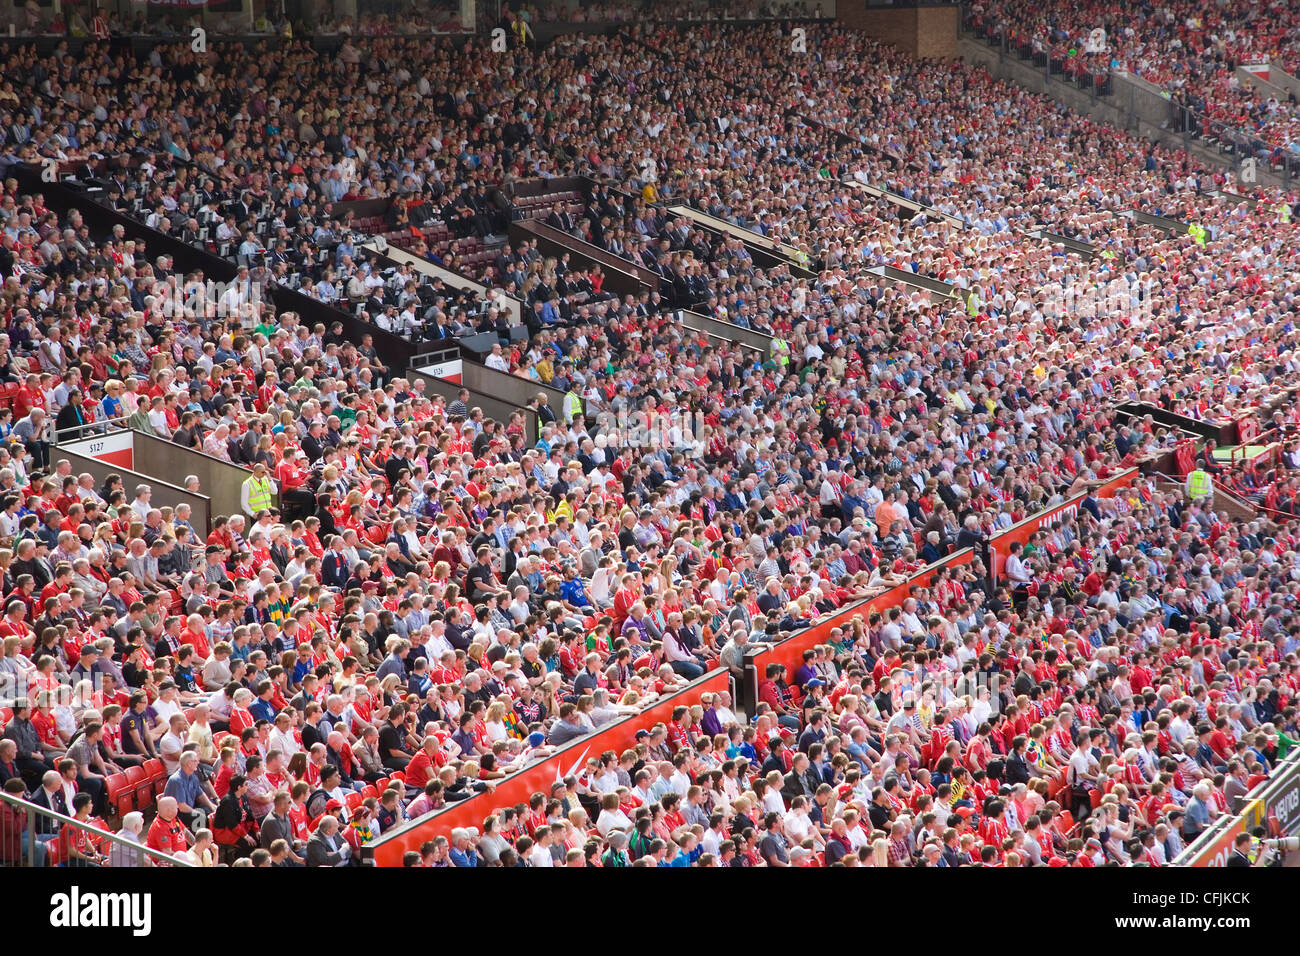 Crowds at English Premiership football match, Manchester, England, United Kingdom, Europe - Stock Image